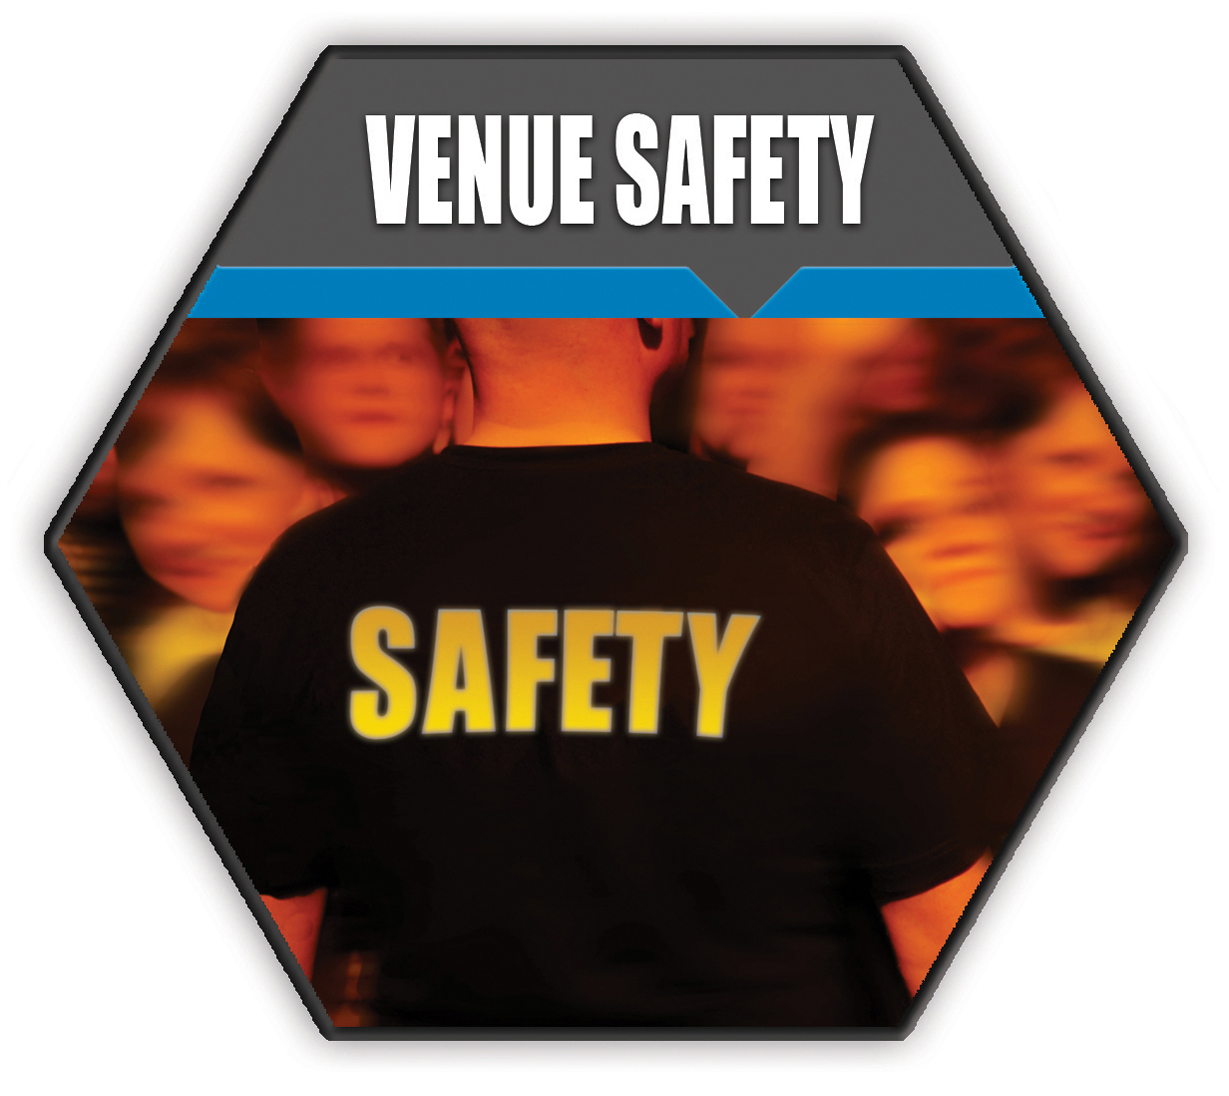 VENUE SAFETY INDICATORS